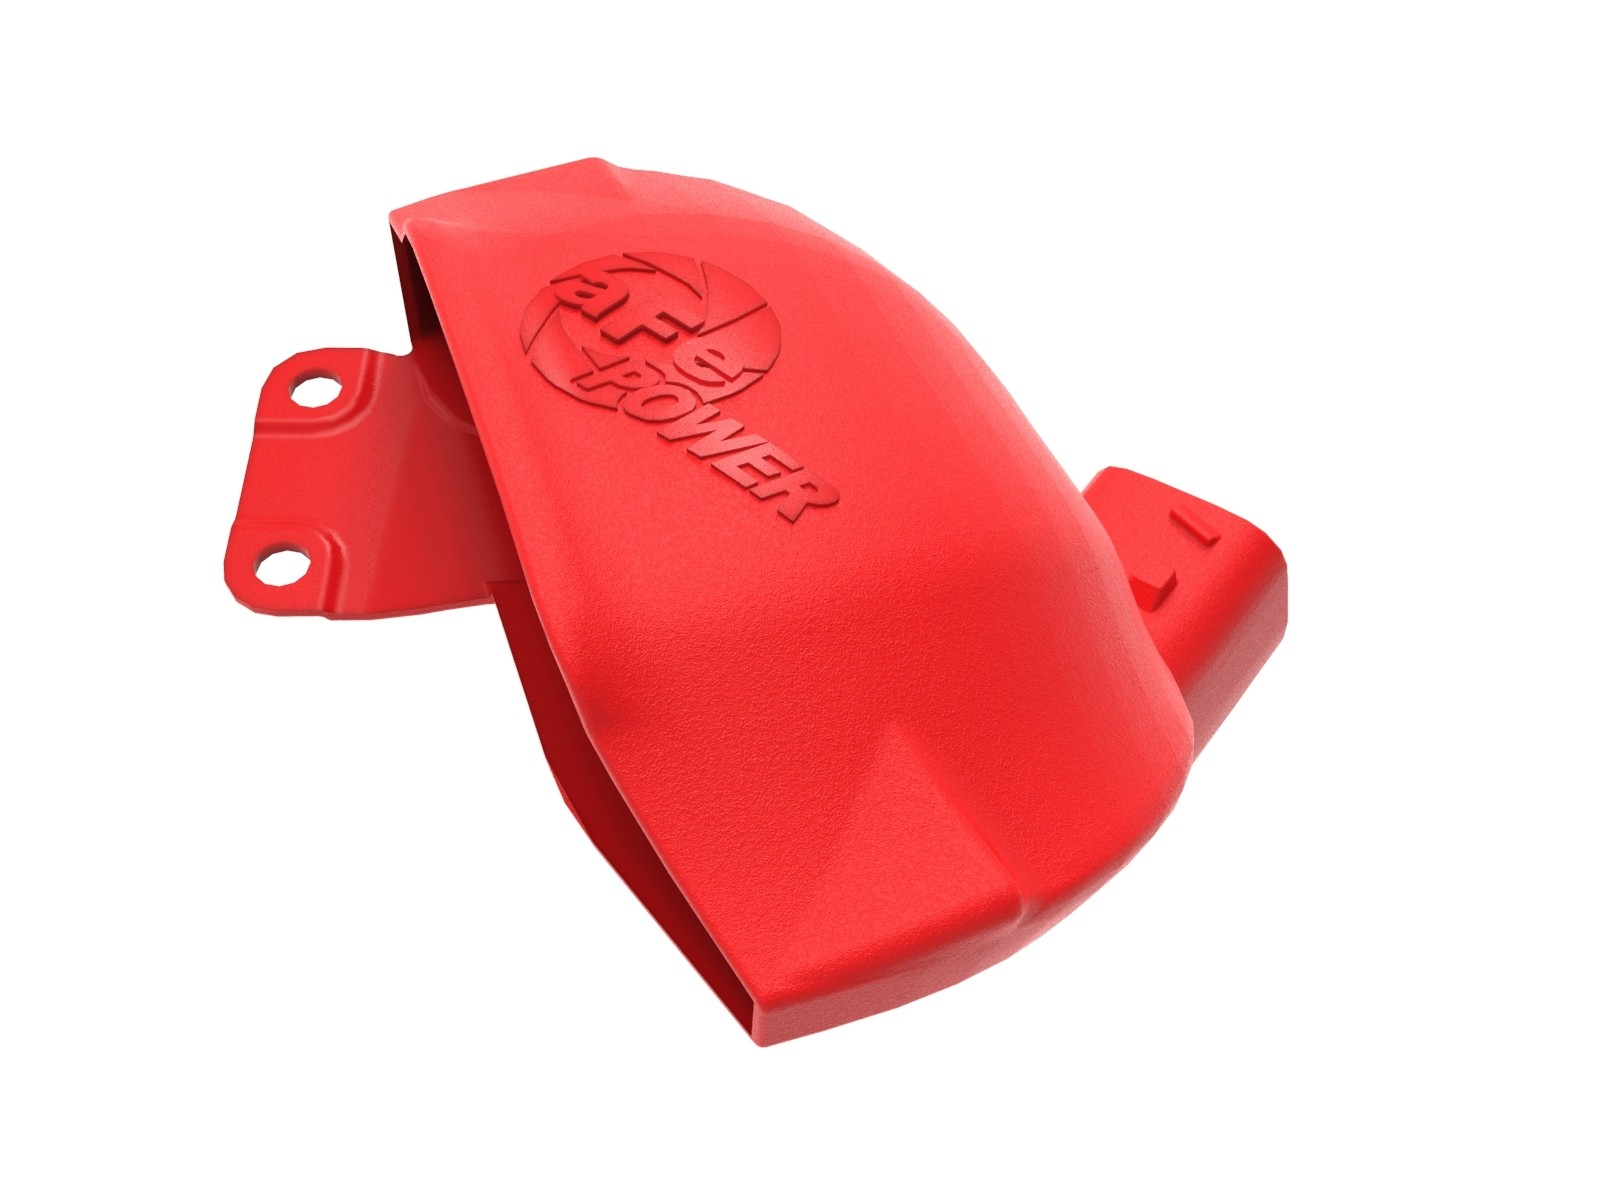 aFe Magnum FORCE Cold Air Intake System Scoop 19-20 Ford Ranger 2.3L(t) - Red